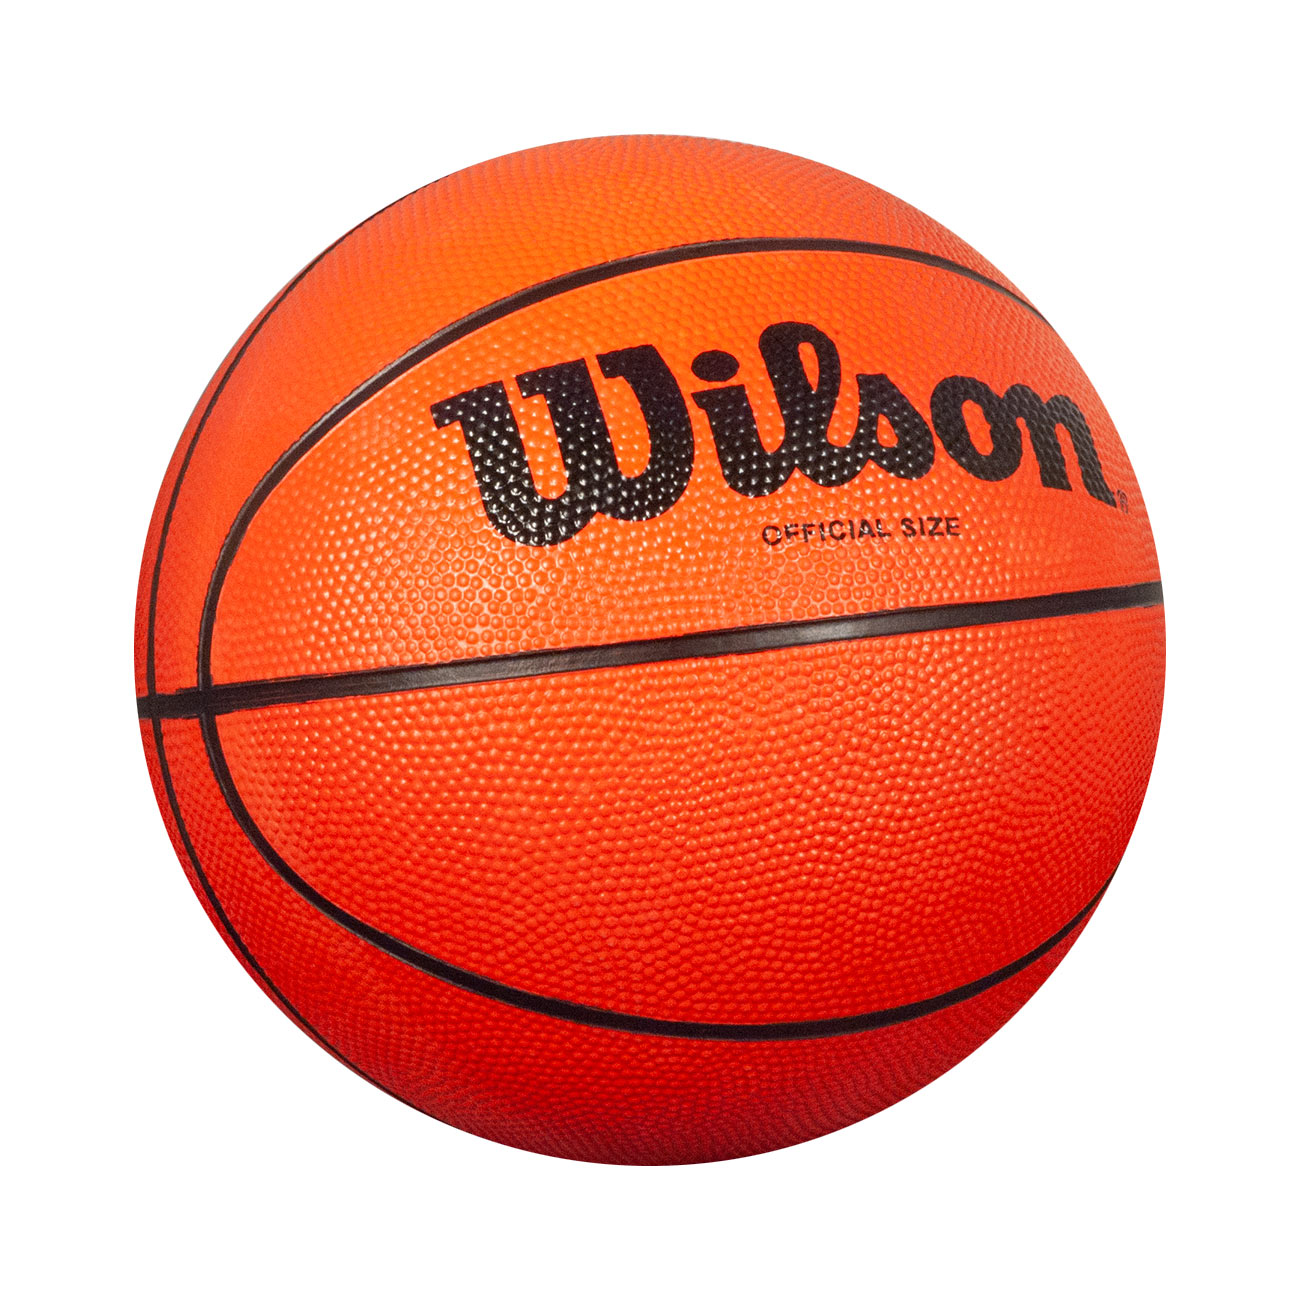 Basketball with Double Inside and Directional Beeper Price: $39.95